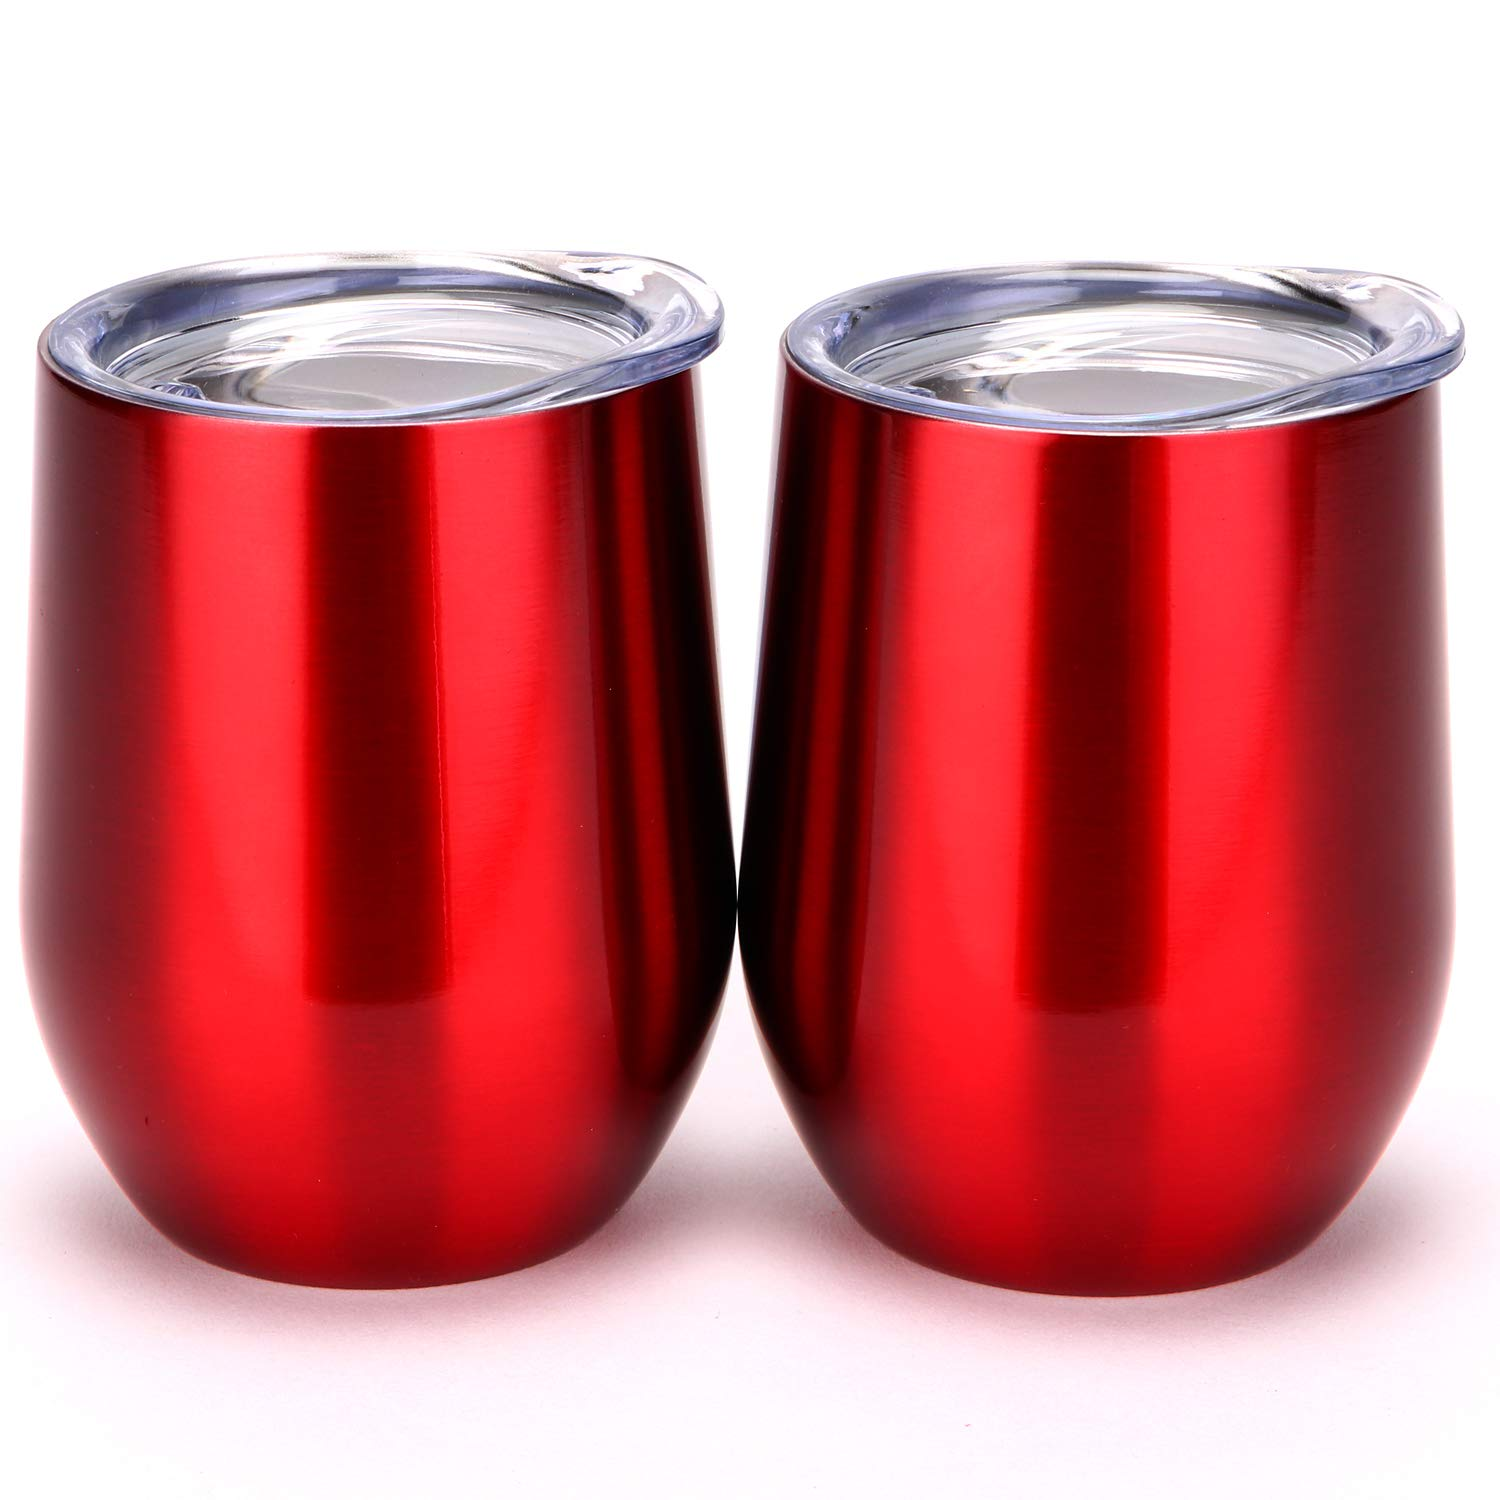 2PACK 12 oz Insulated Stemless Glass,Stemless Wine Glass,Wine Tumbler, Exclusive for Home, Office,Perfect for Wine,Coffee, Drinks,Champagne,Cocktails